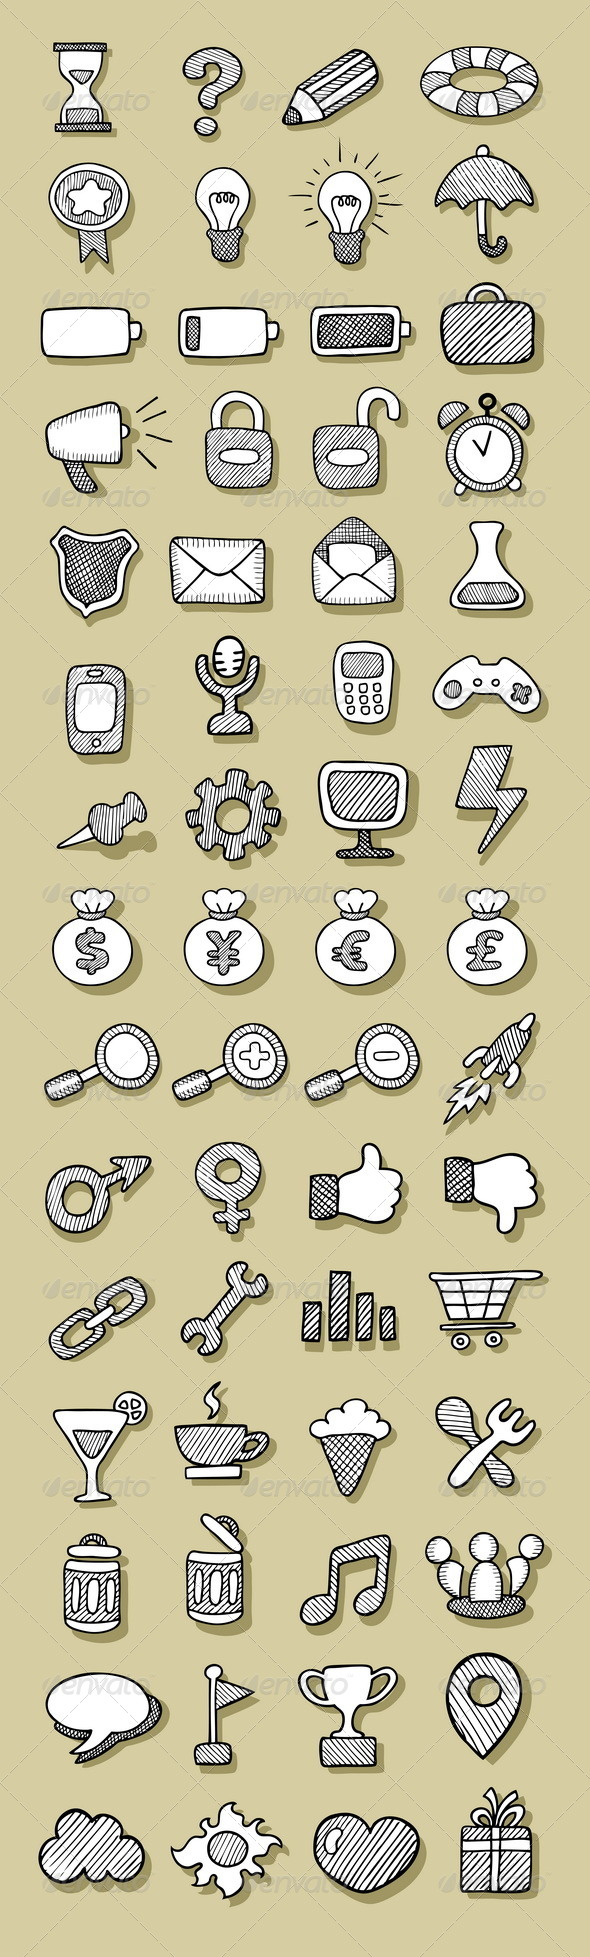 Icons Sketch - Web Elements Vectors